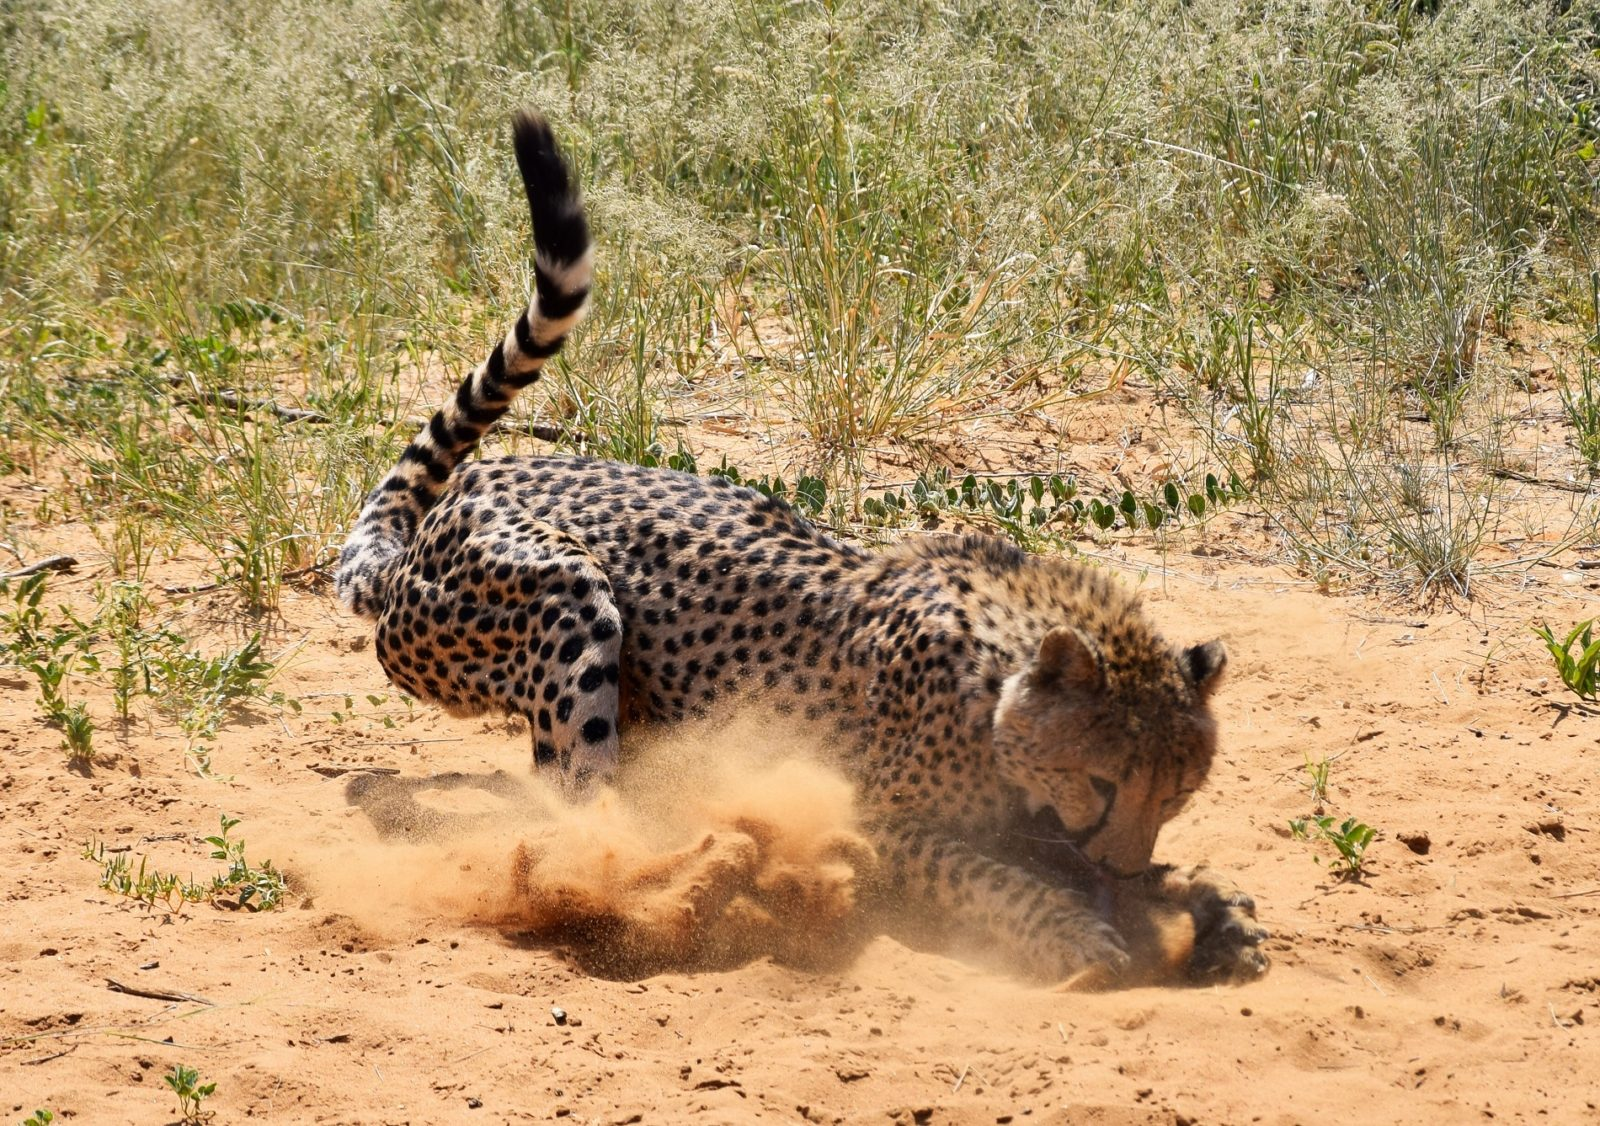 Cheetah, africa | When African Animals Attack